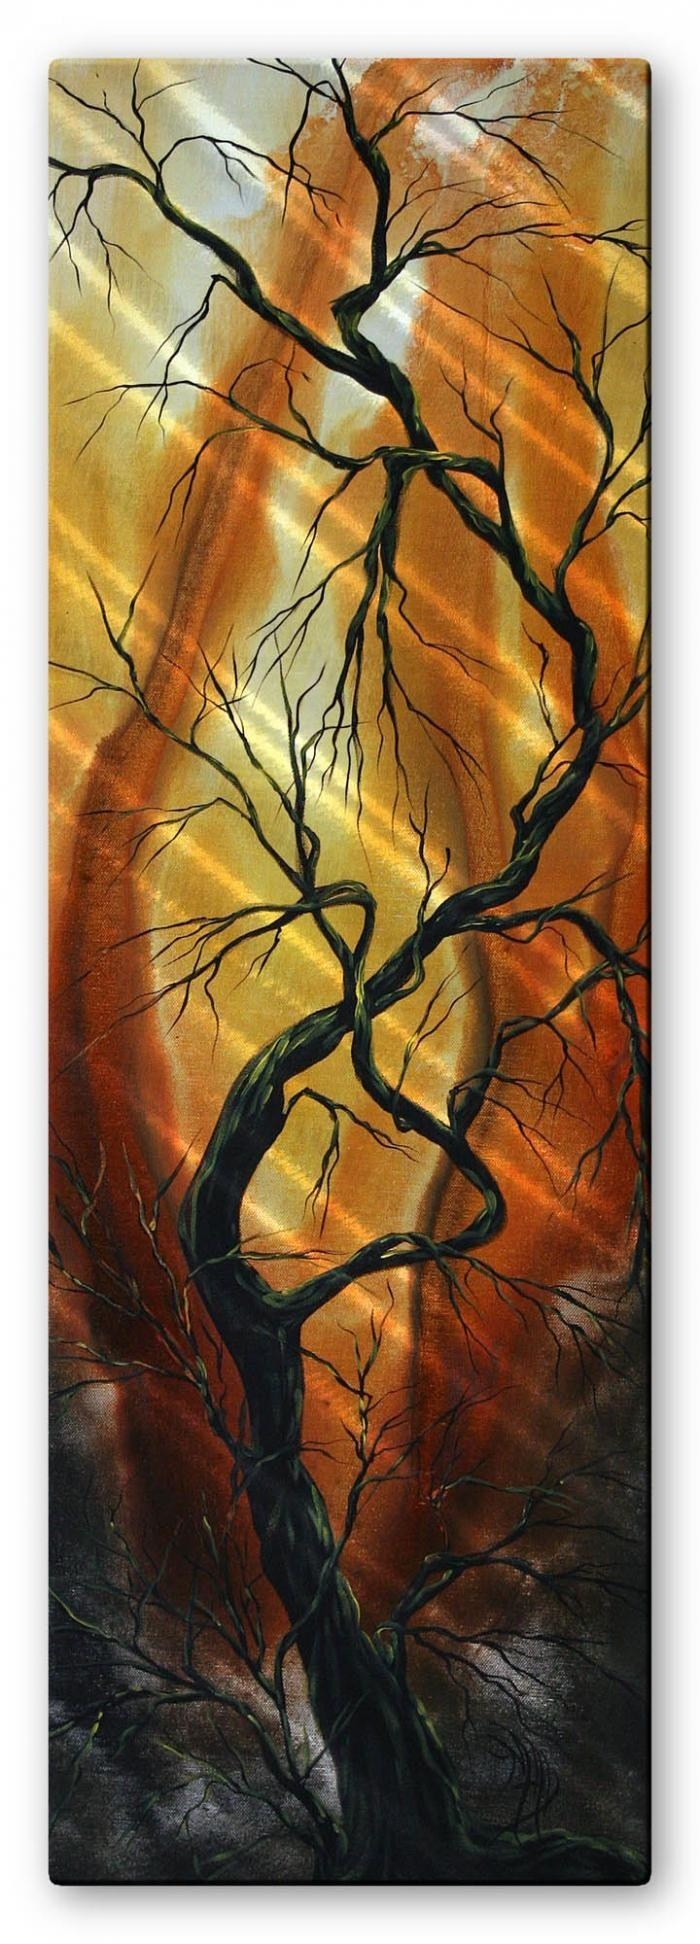 65 Best Artist- Megan Duncanson Images On Pinterest | Abstract Art intended for Megan Duncanson Metal Wall Art